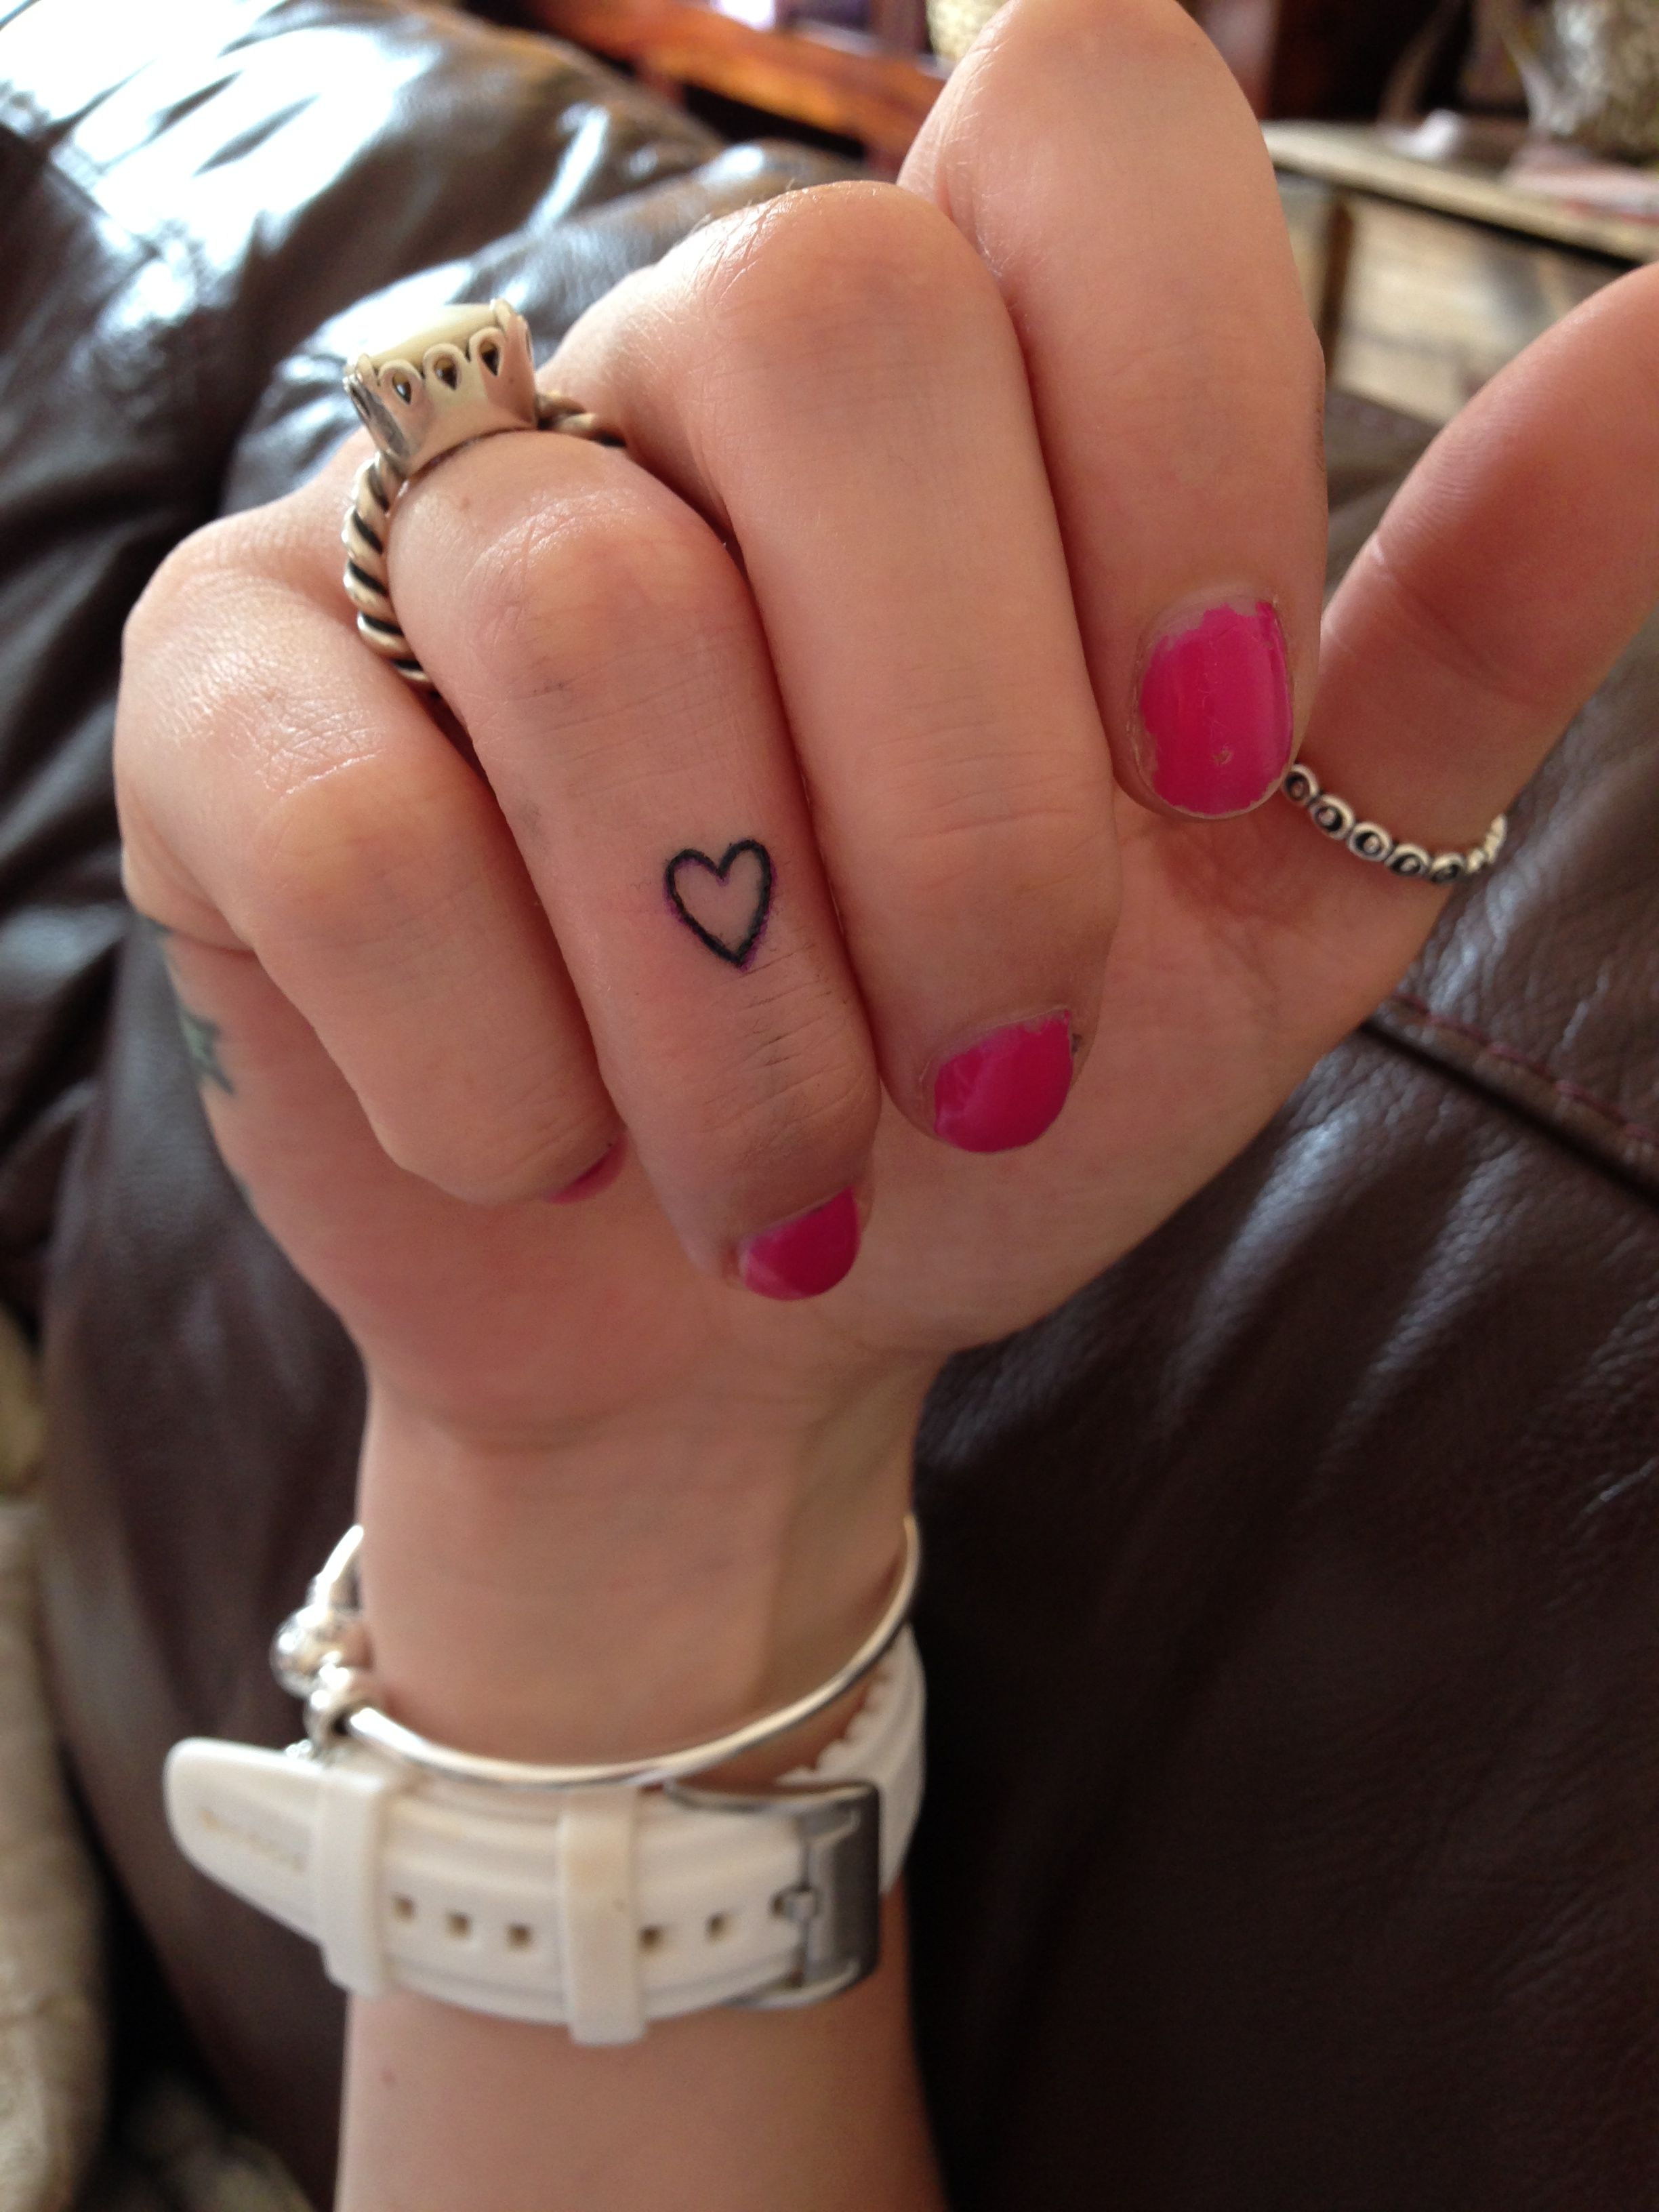 Heart Finger Tattoo I Like This Placement It Won T Distract From The Ring White Finger Tattoos Ring Finger Tattoos Tiny Heart Tattoos